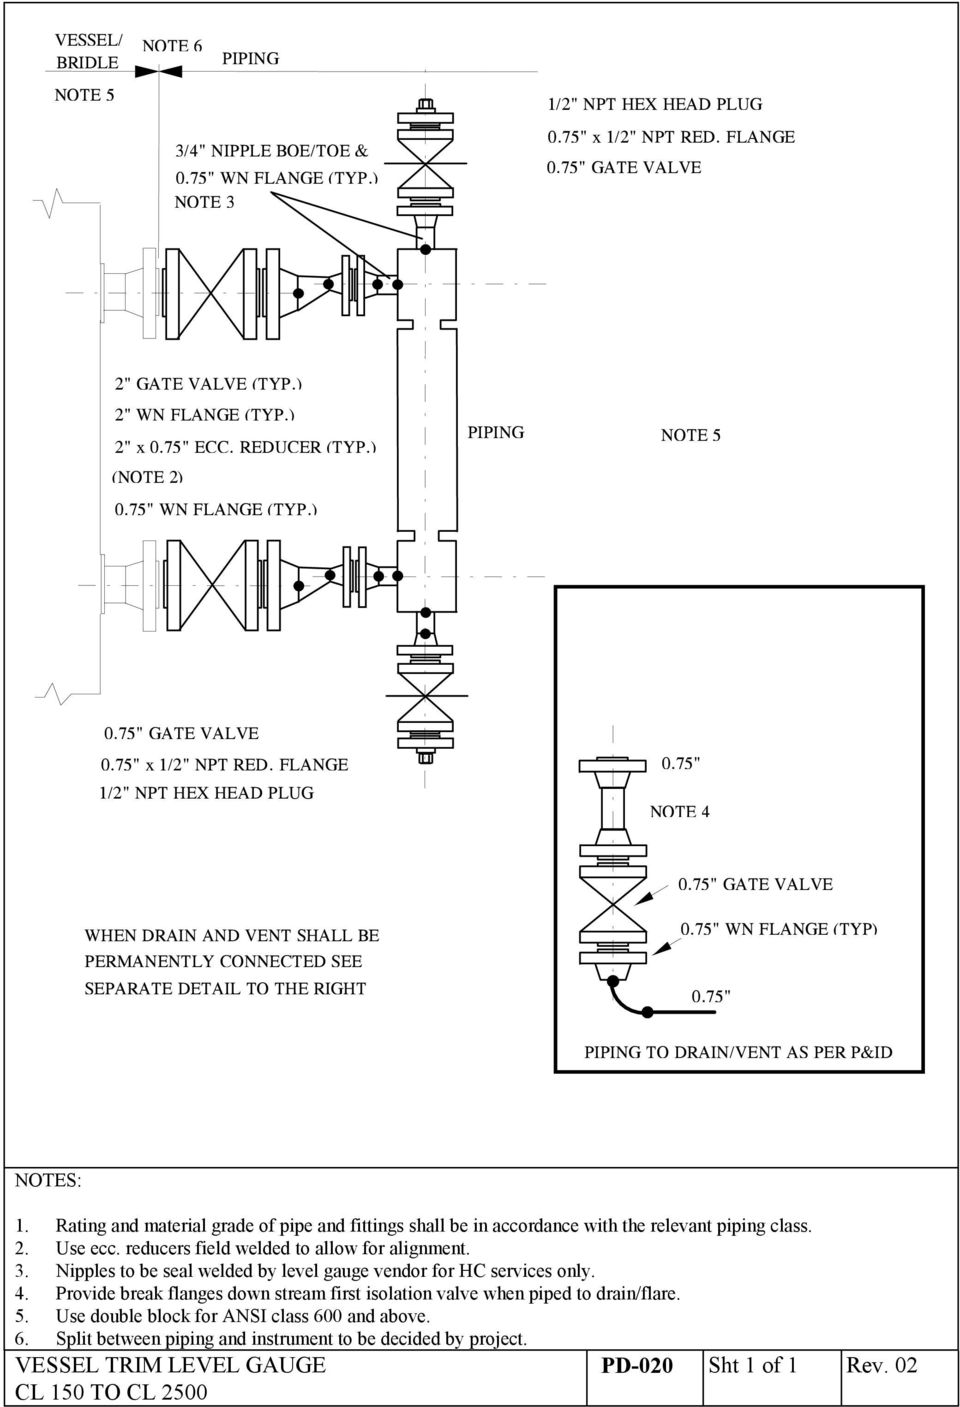 Norsok Standard Common Requirements Piping Details Pdf Layout Notes 75 Note 4 When Drain And Vent Shall Be Permanently Connected See Separate Detail To